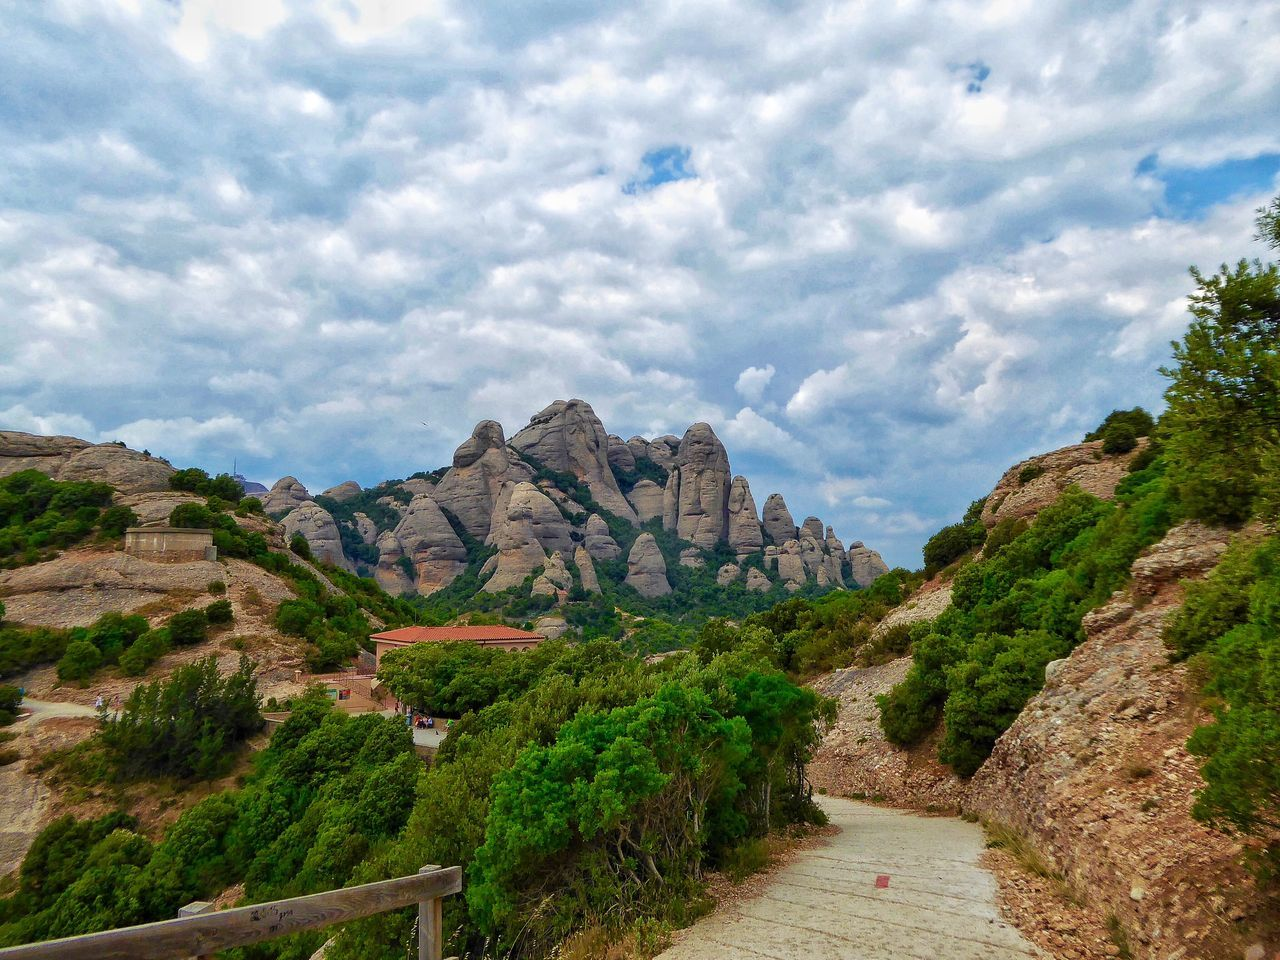 Montserrat SPAIN Spain♥ Catalunya Catalonia Mountains Mountain Mountain Range Mountain View Mountains And Sky Mountain_collection Landscape Landscape_Collection Landscape_photography Landscapes Landscape_lovers Landscape #Nature #photography Landscape Photography Rock Formation Rock Formations Strange Rock Formations Strange Rockformations